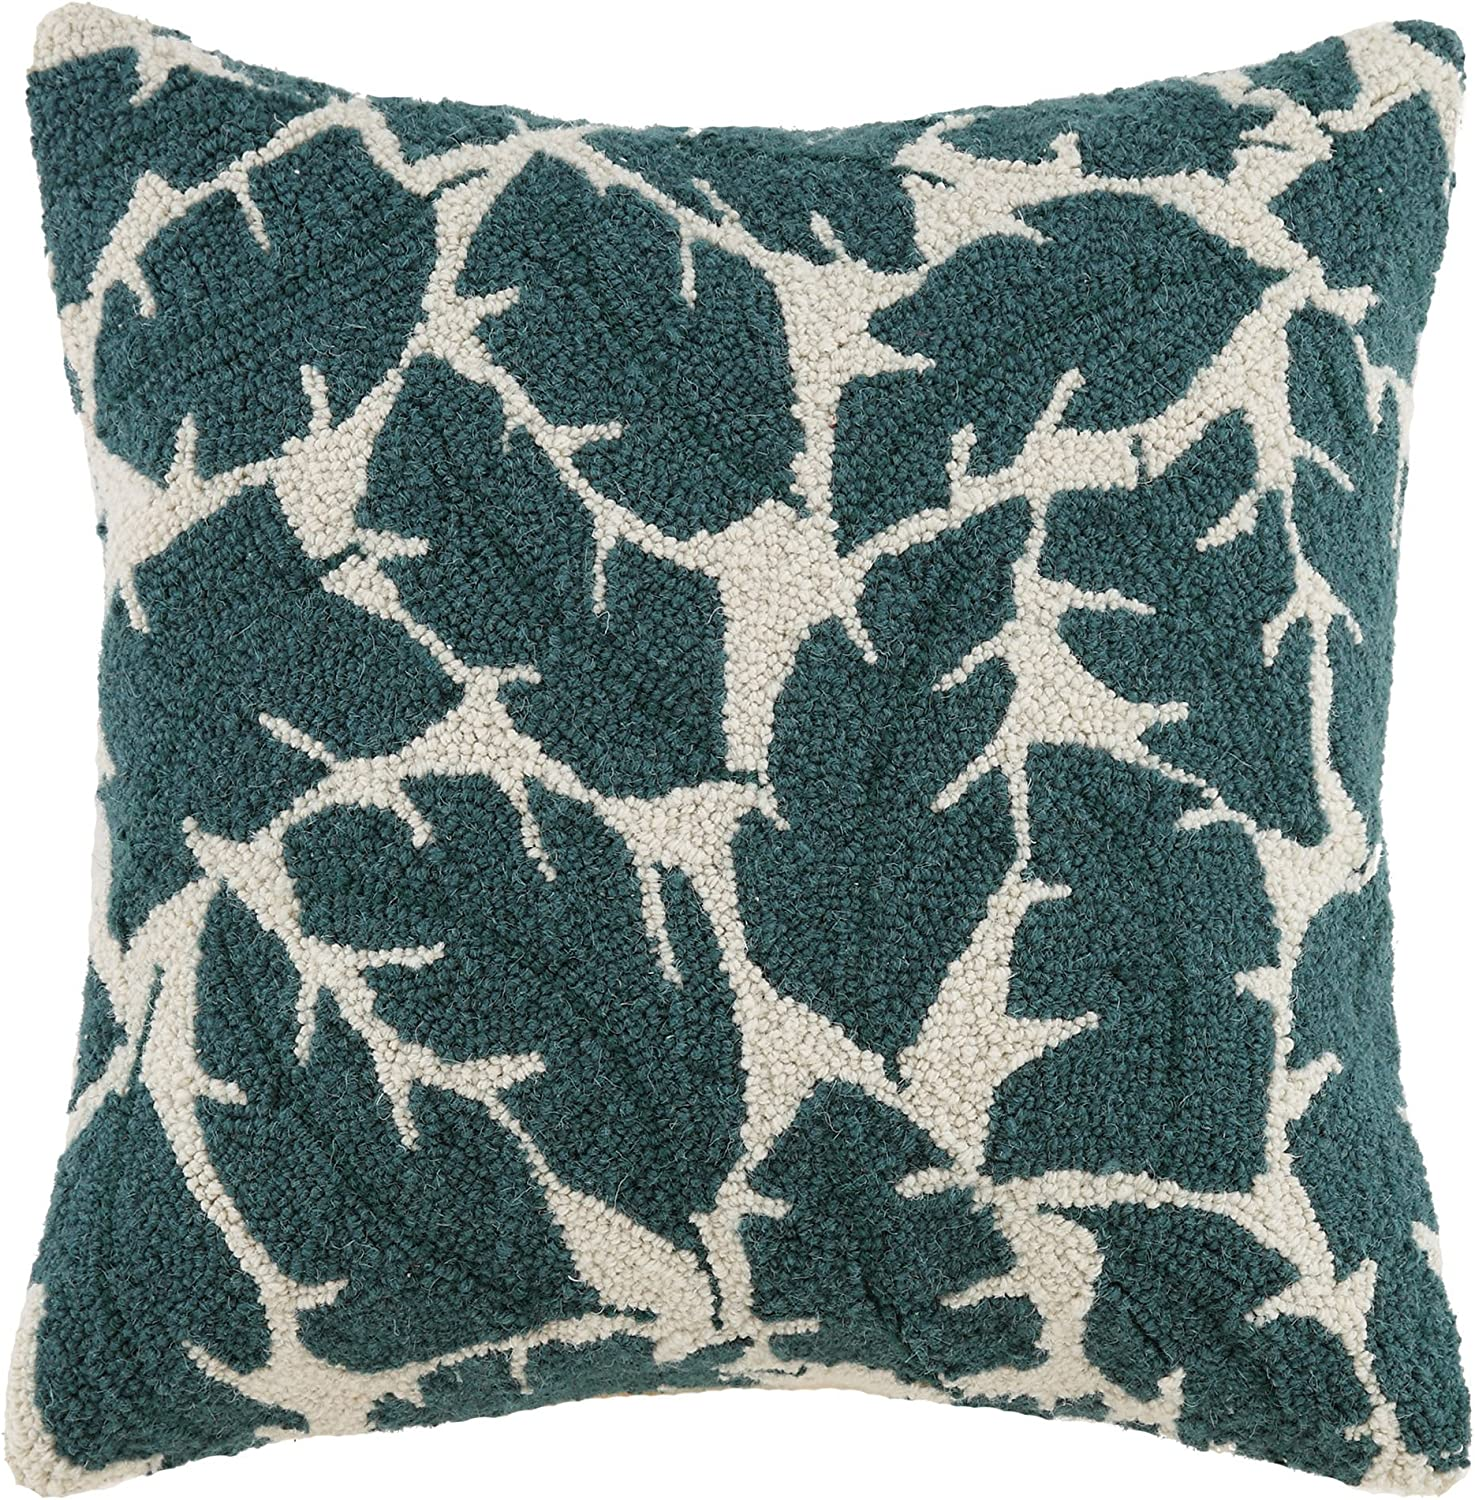 Amazon Com Makers Collective Elizabeth Olwen Rise And Shine Leaves Hook Pillow 18 By 18 Home Kitchen